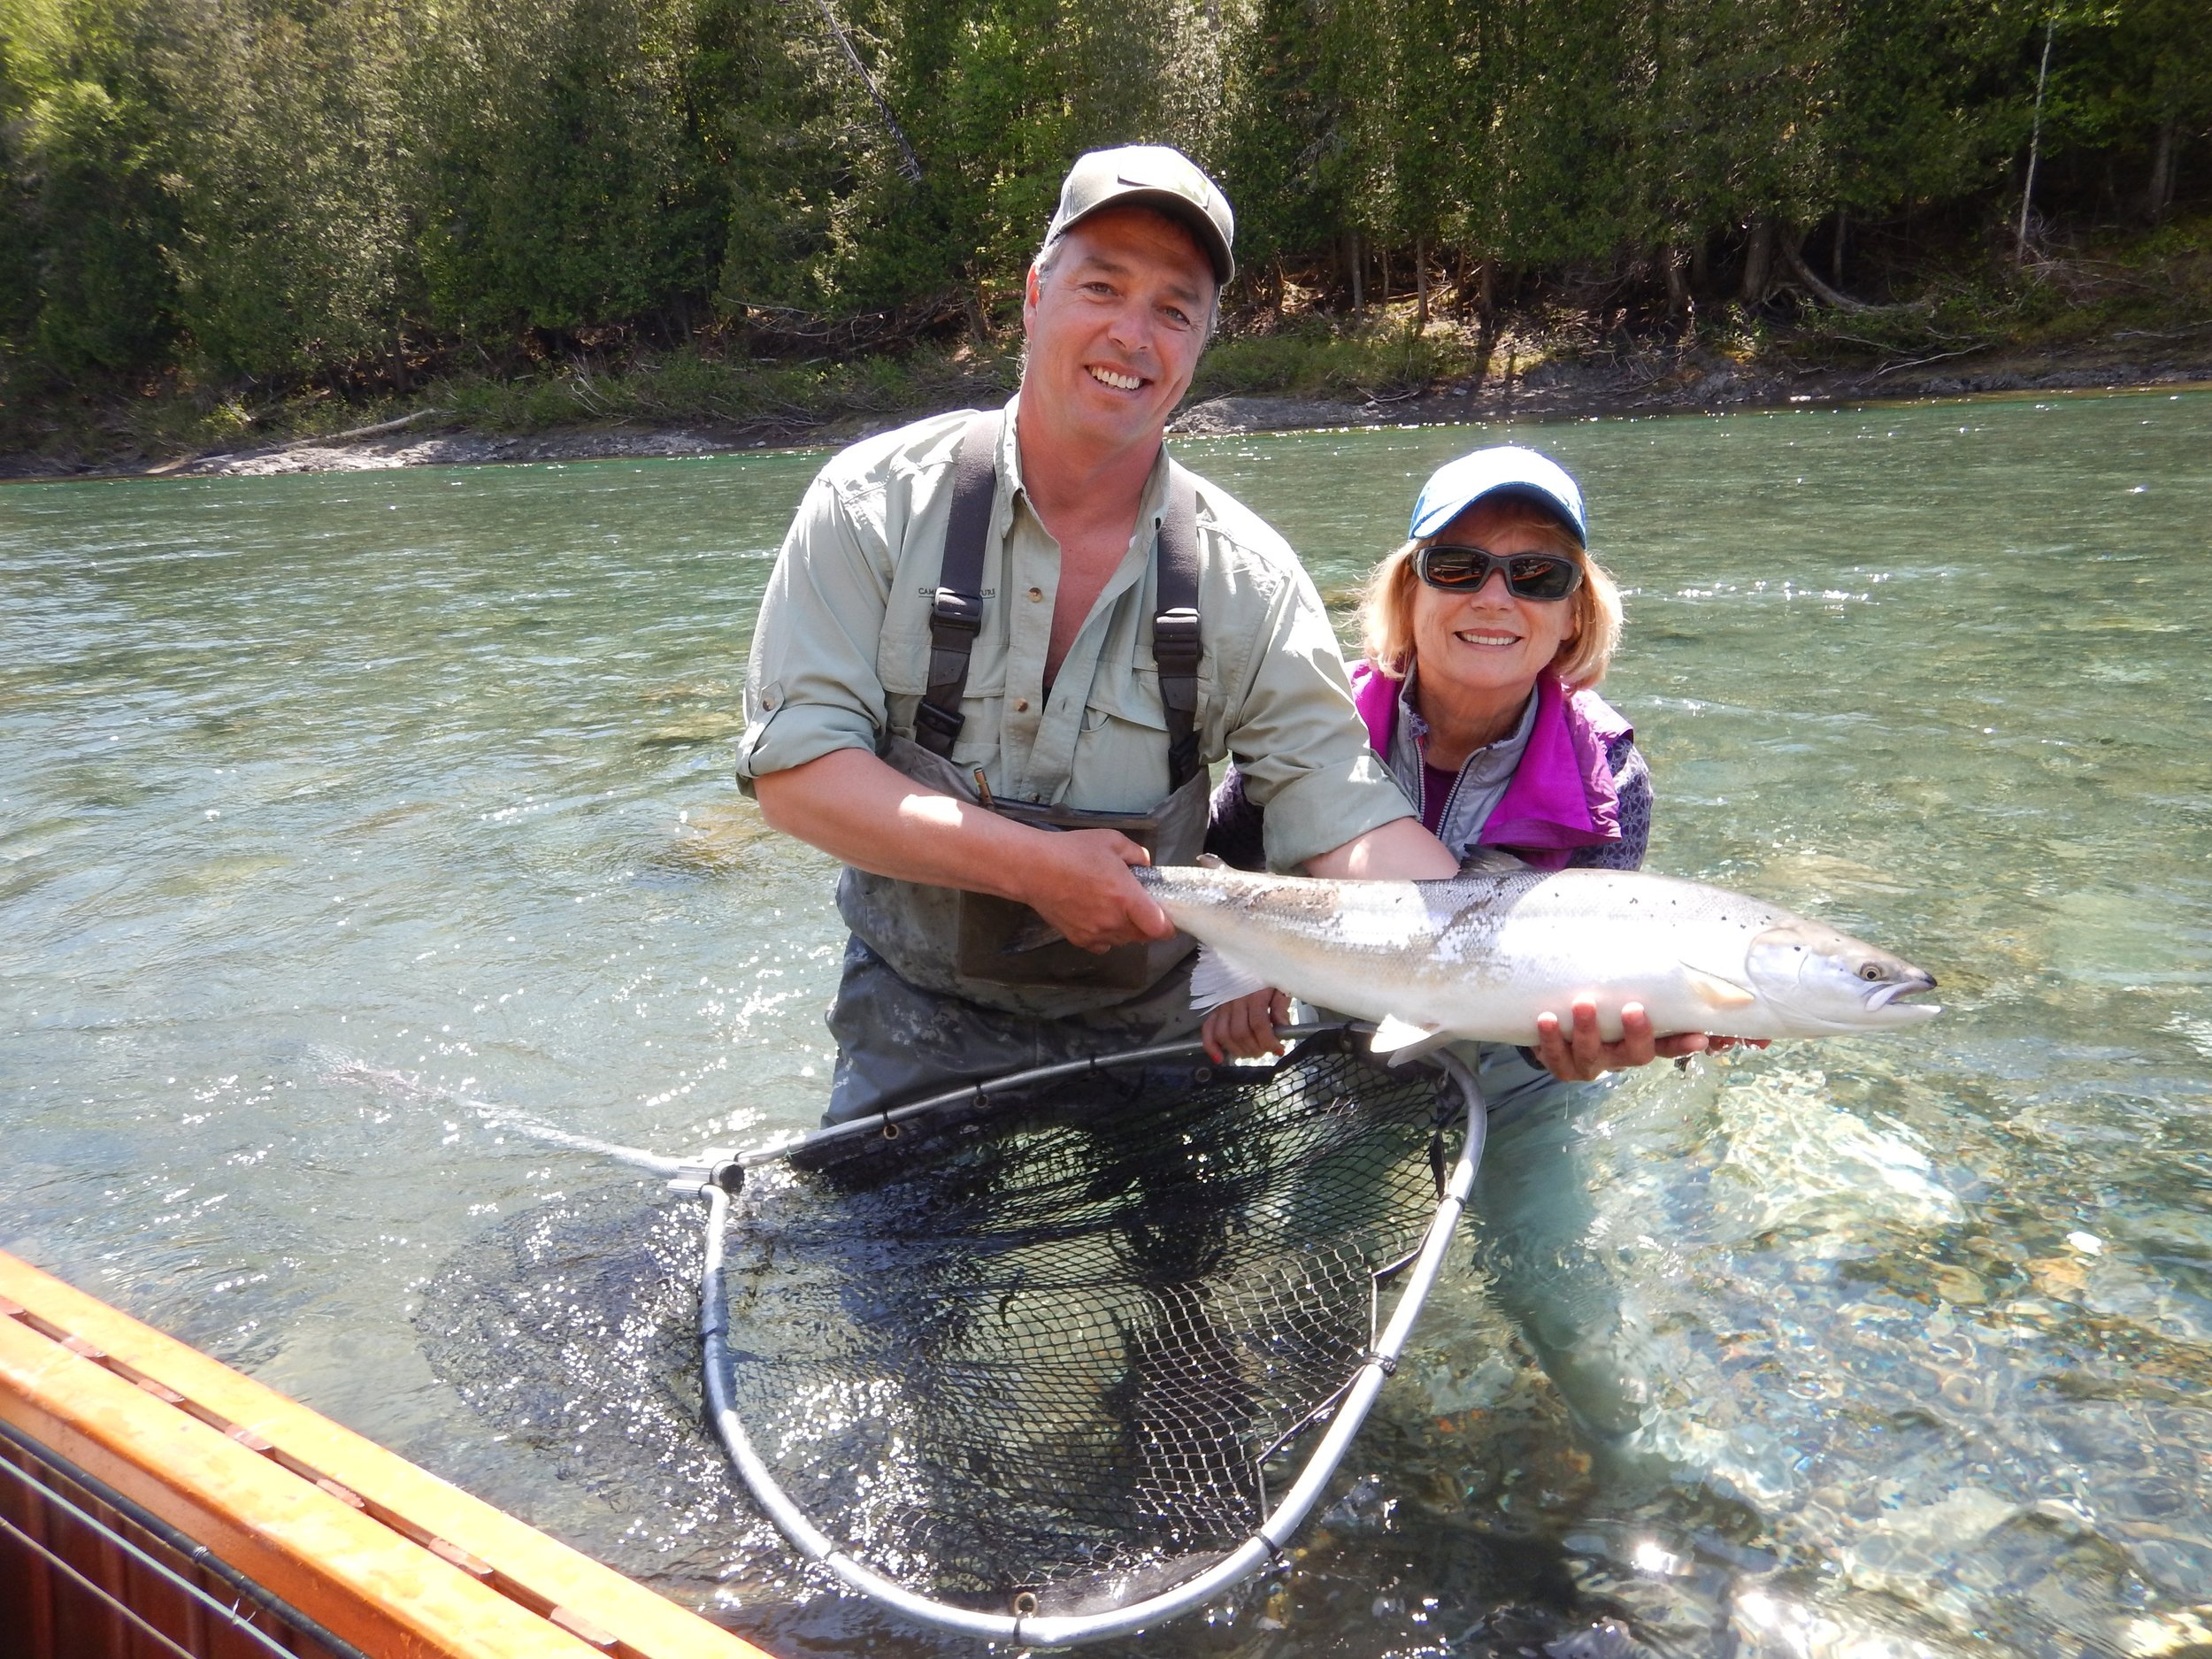 Camp Bonaventure regular Sonja Meisner and  master guide Matthew Flowers with her first one of the season, nice one Sonja!